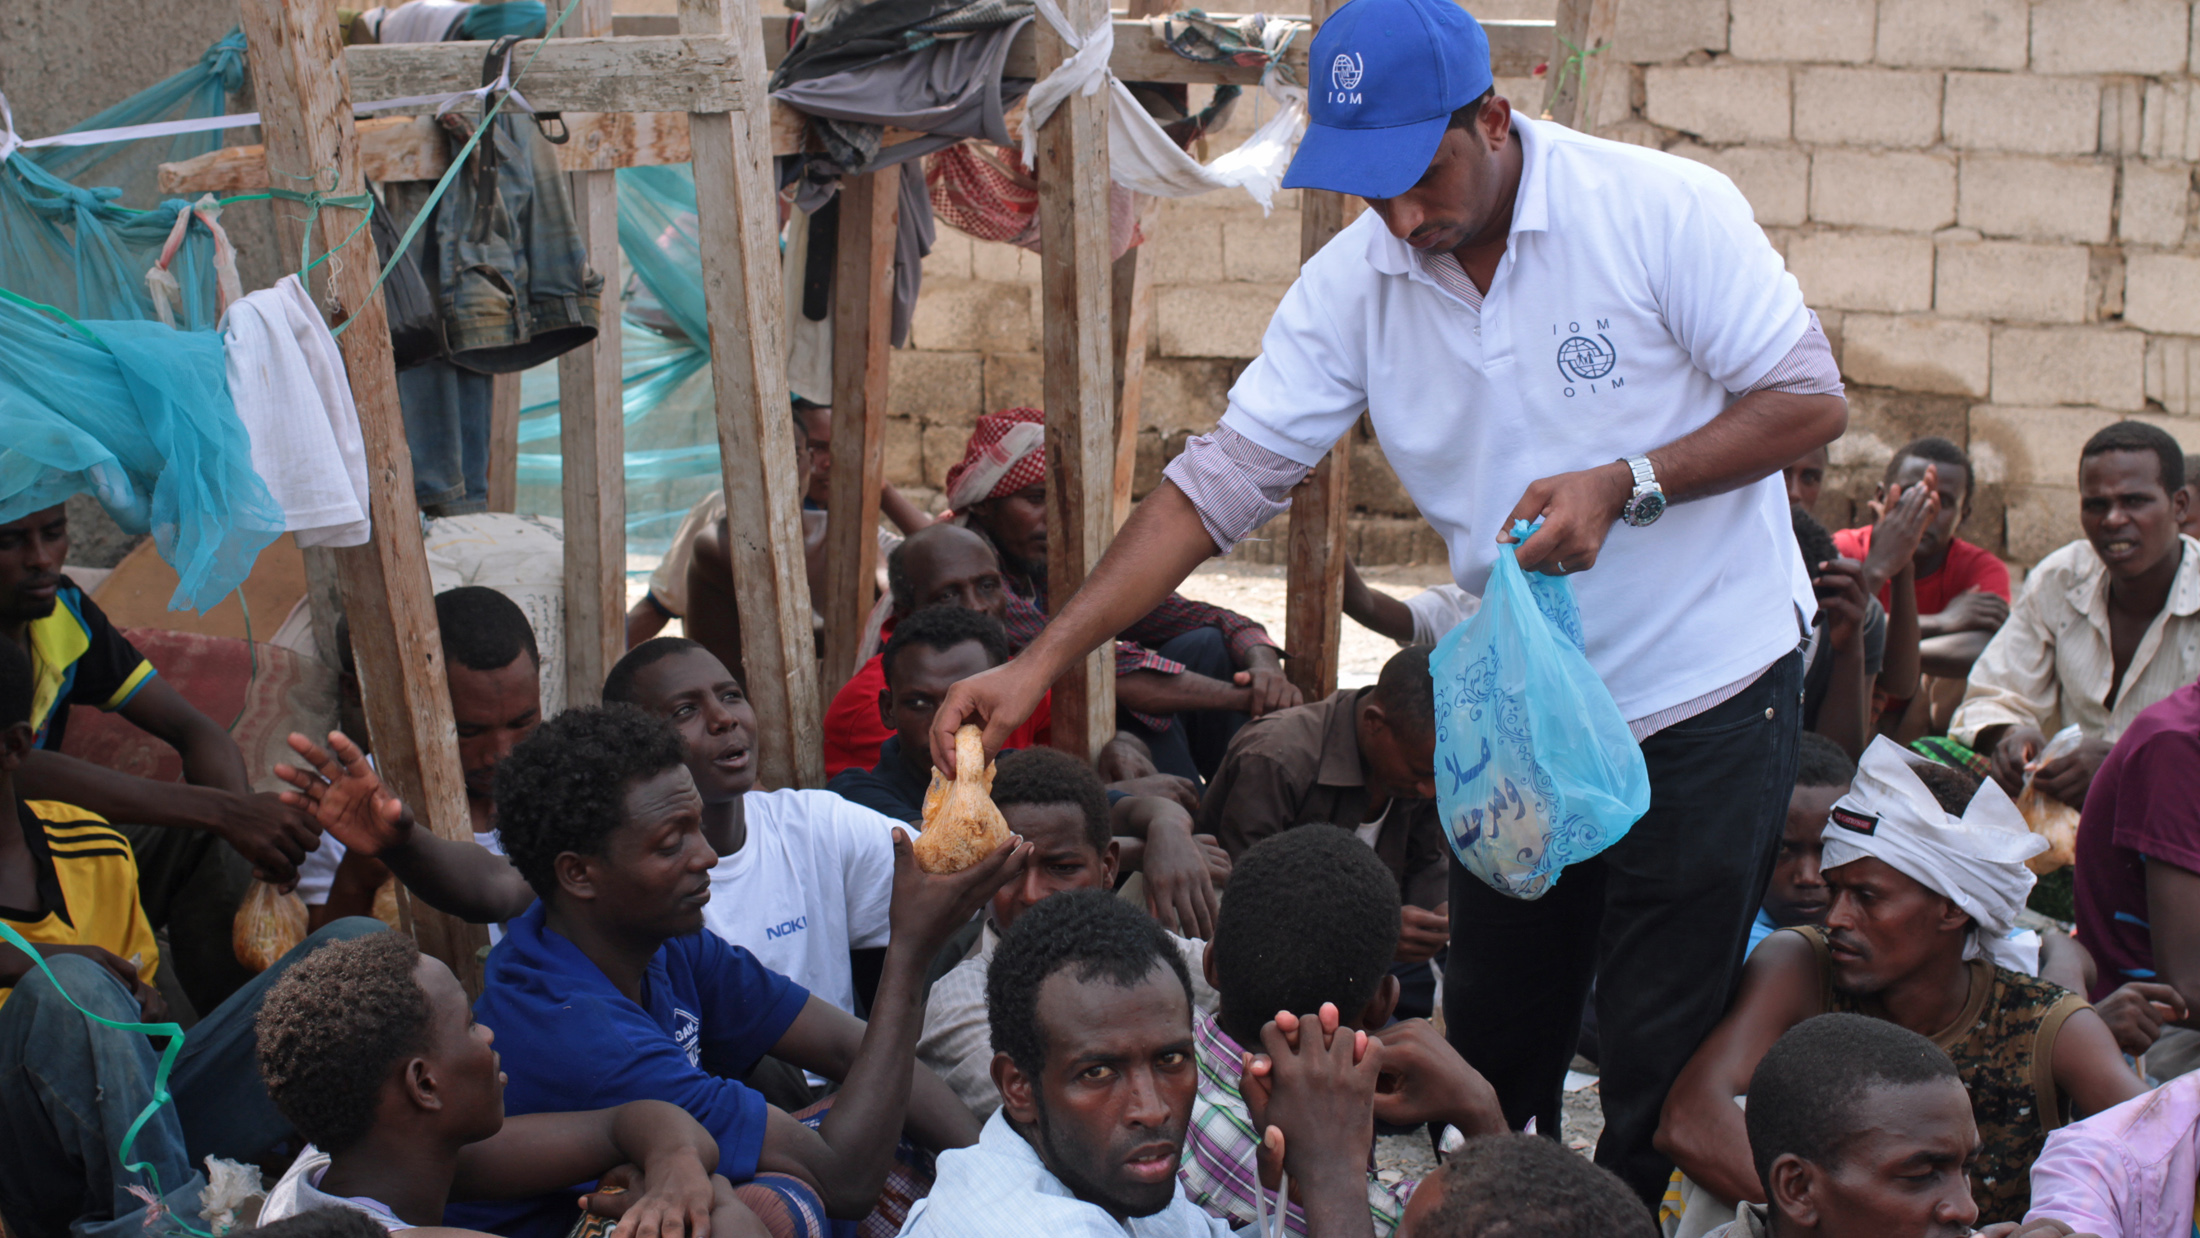 Food is distributed by IOM to Ethiopian migrants staying in a half-finished mosque in Aden, southern Yemen (September 2013)